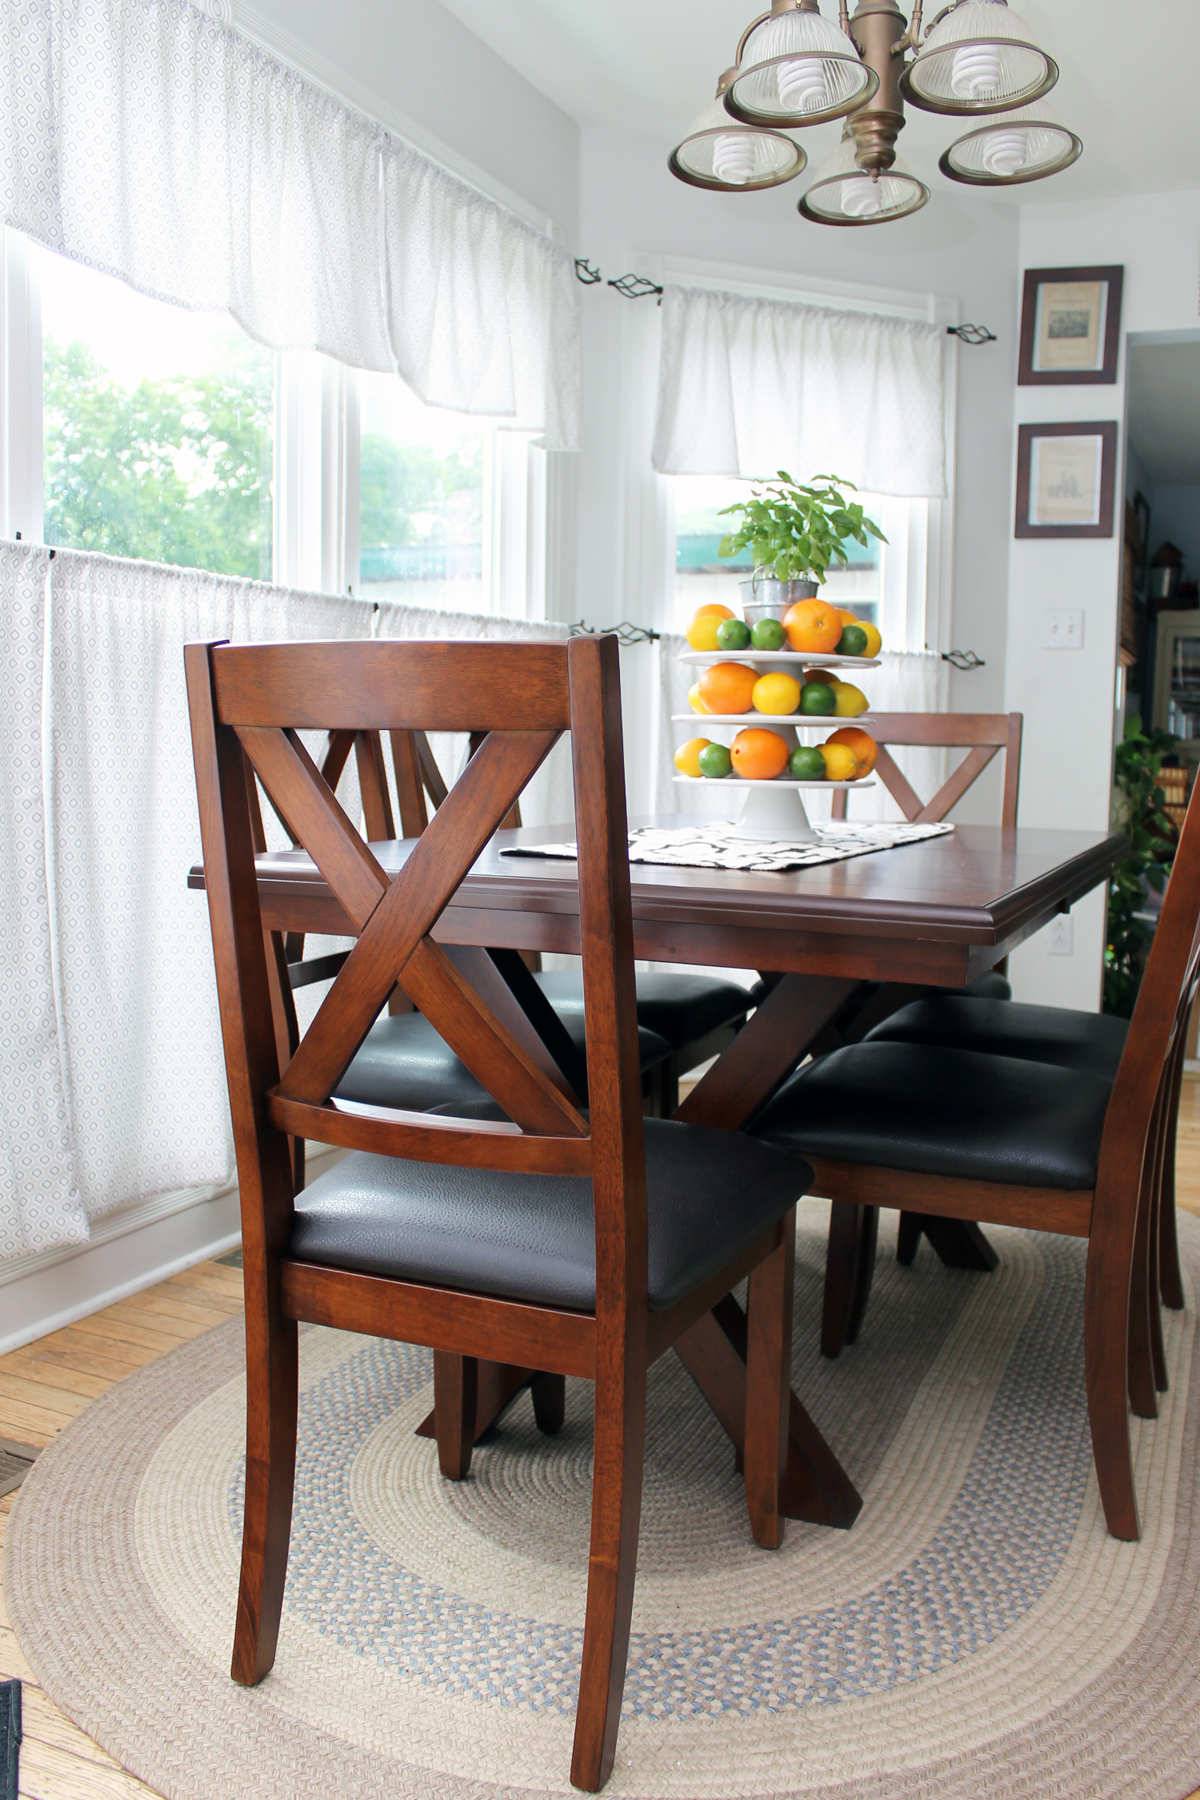 Beautiful An addition of a farmhouse table makes a great statement in any home